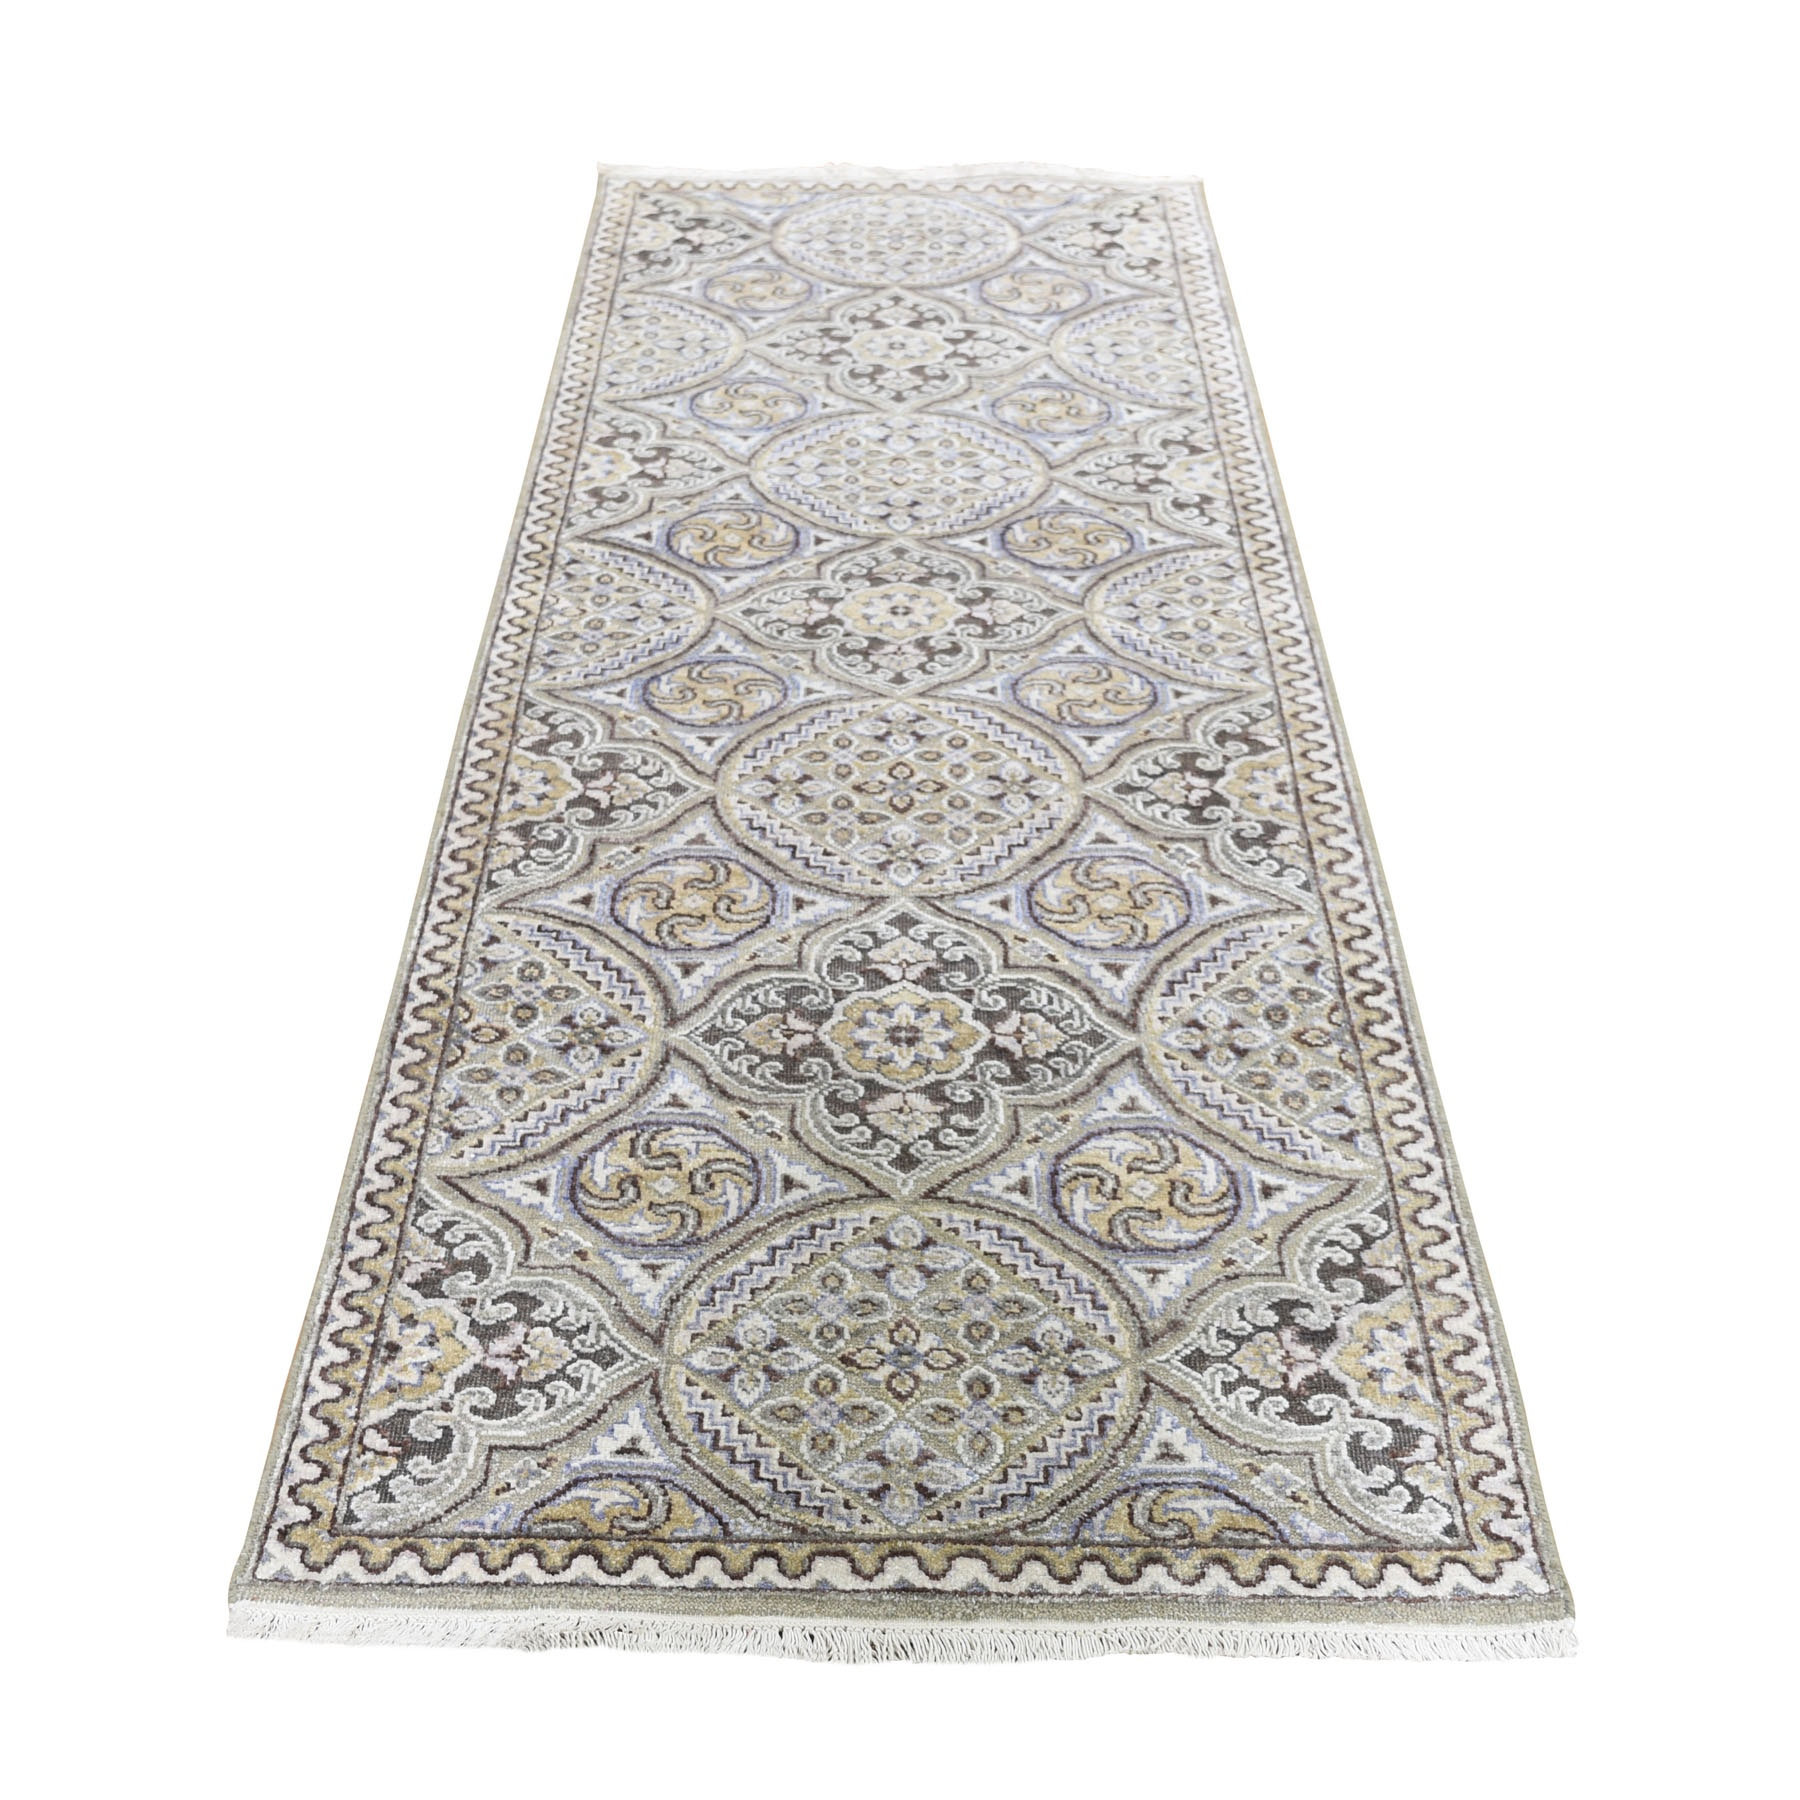 "2'7""X7'9"" Textured Wool And Silk Mughal Inspired Medallions Runner Oriental Rug moad69d9"